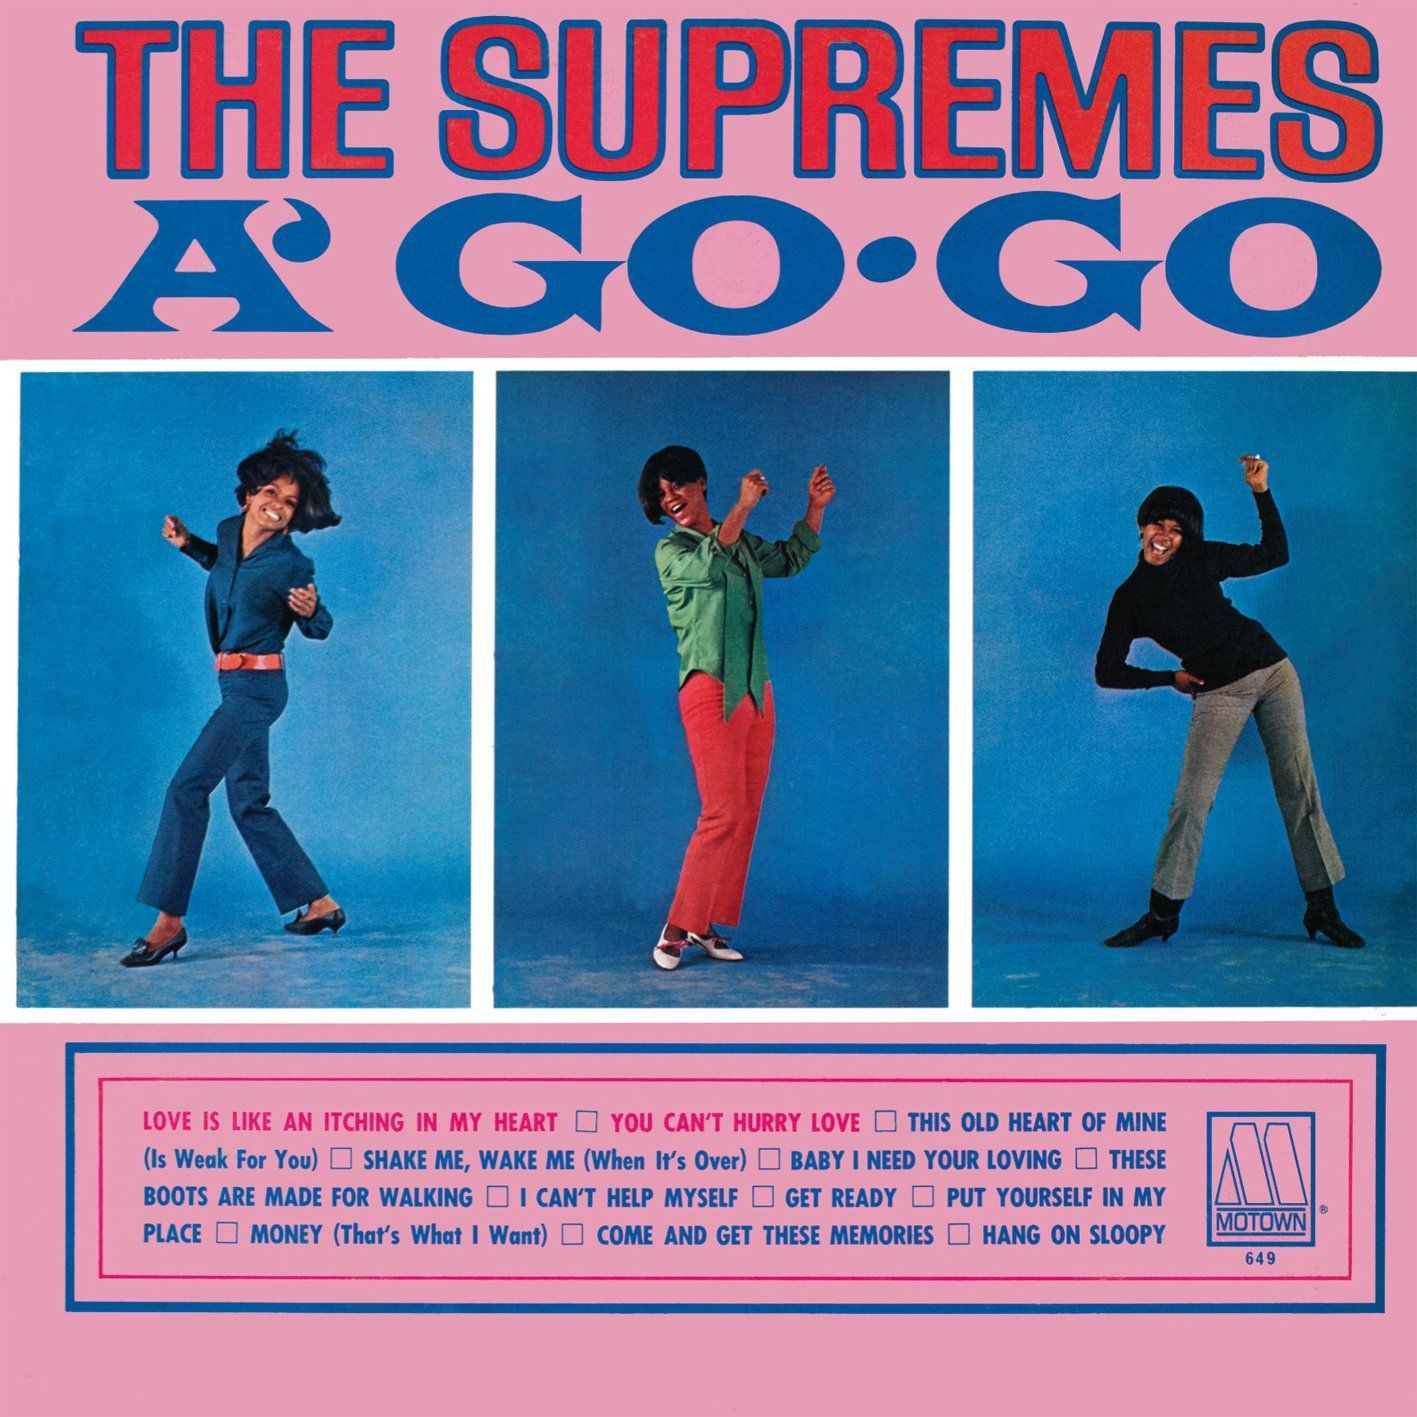 Today 10 22 in 1966 The Supremes landed on the top of the LP chart